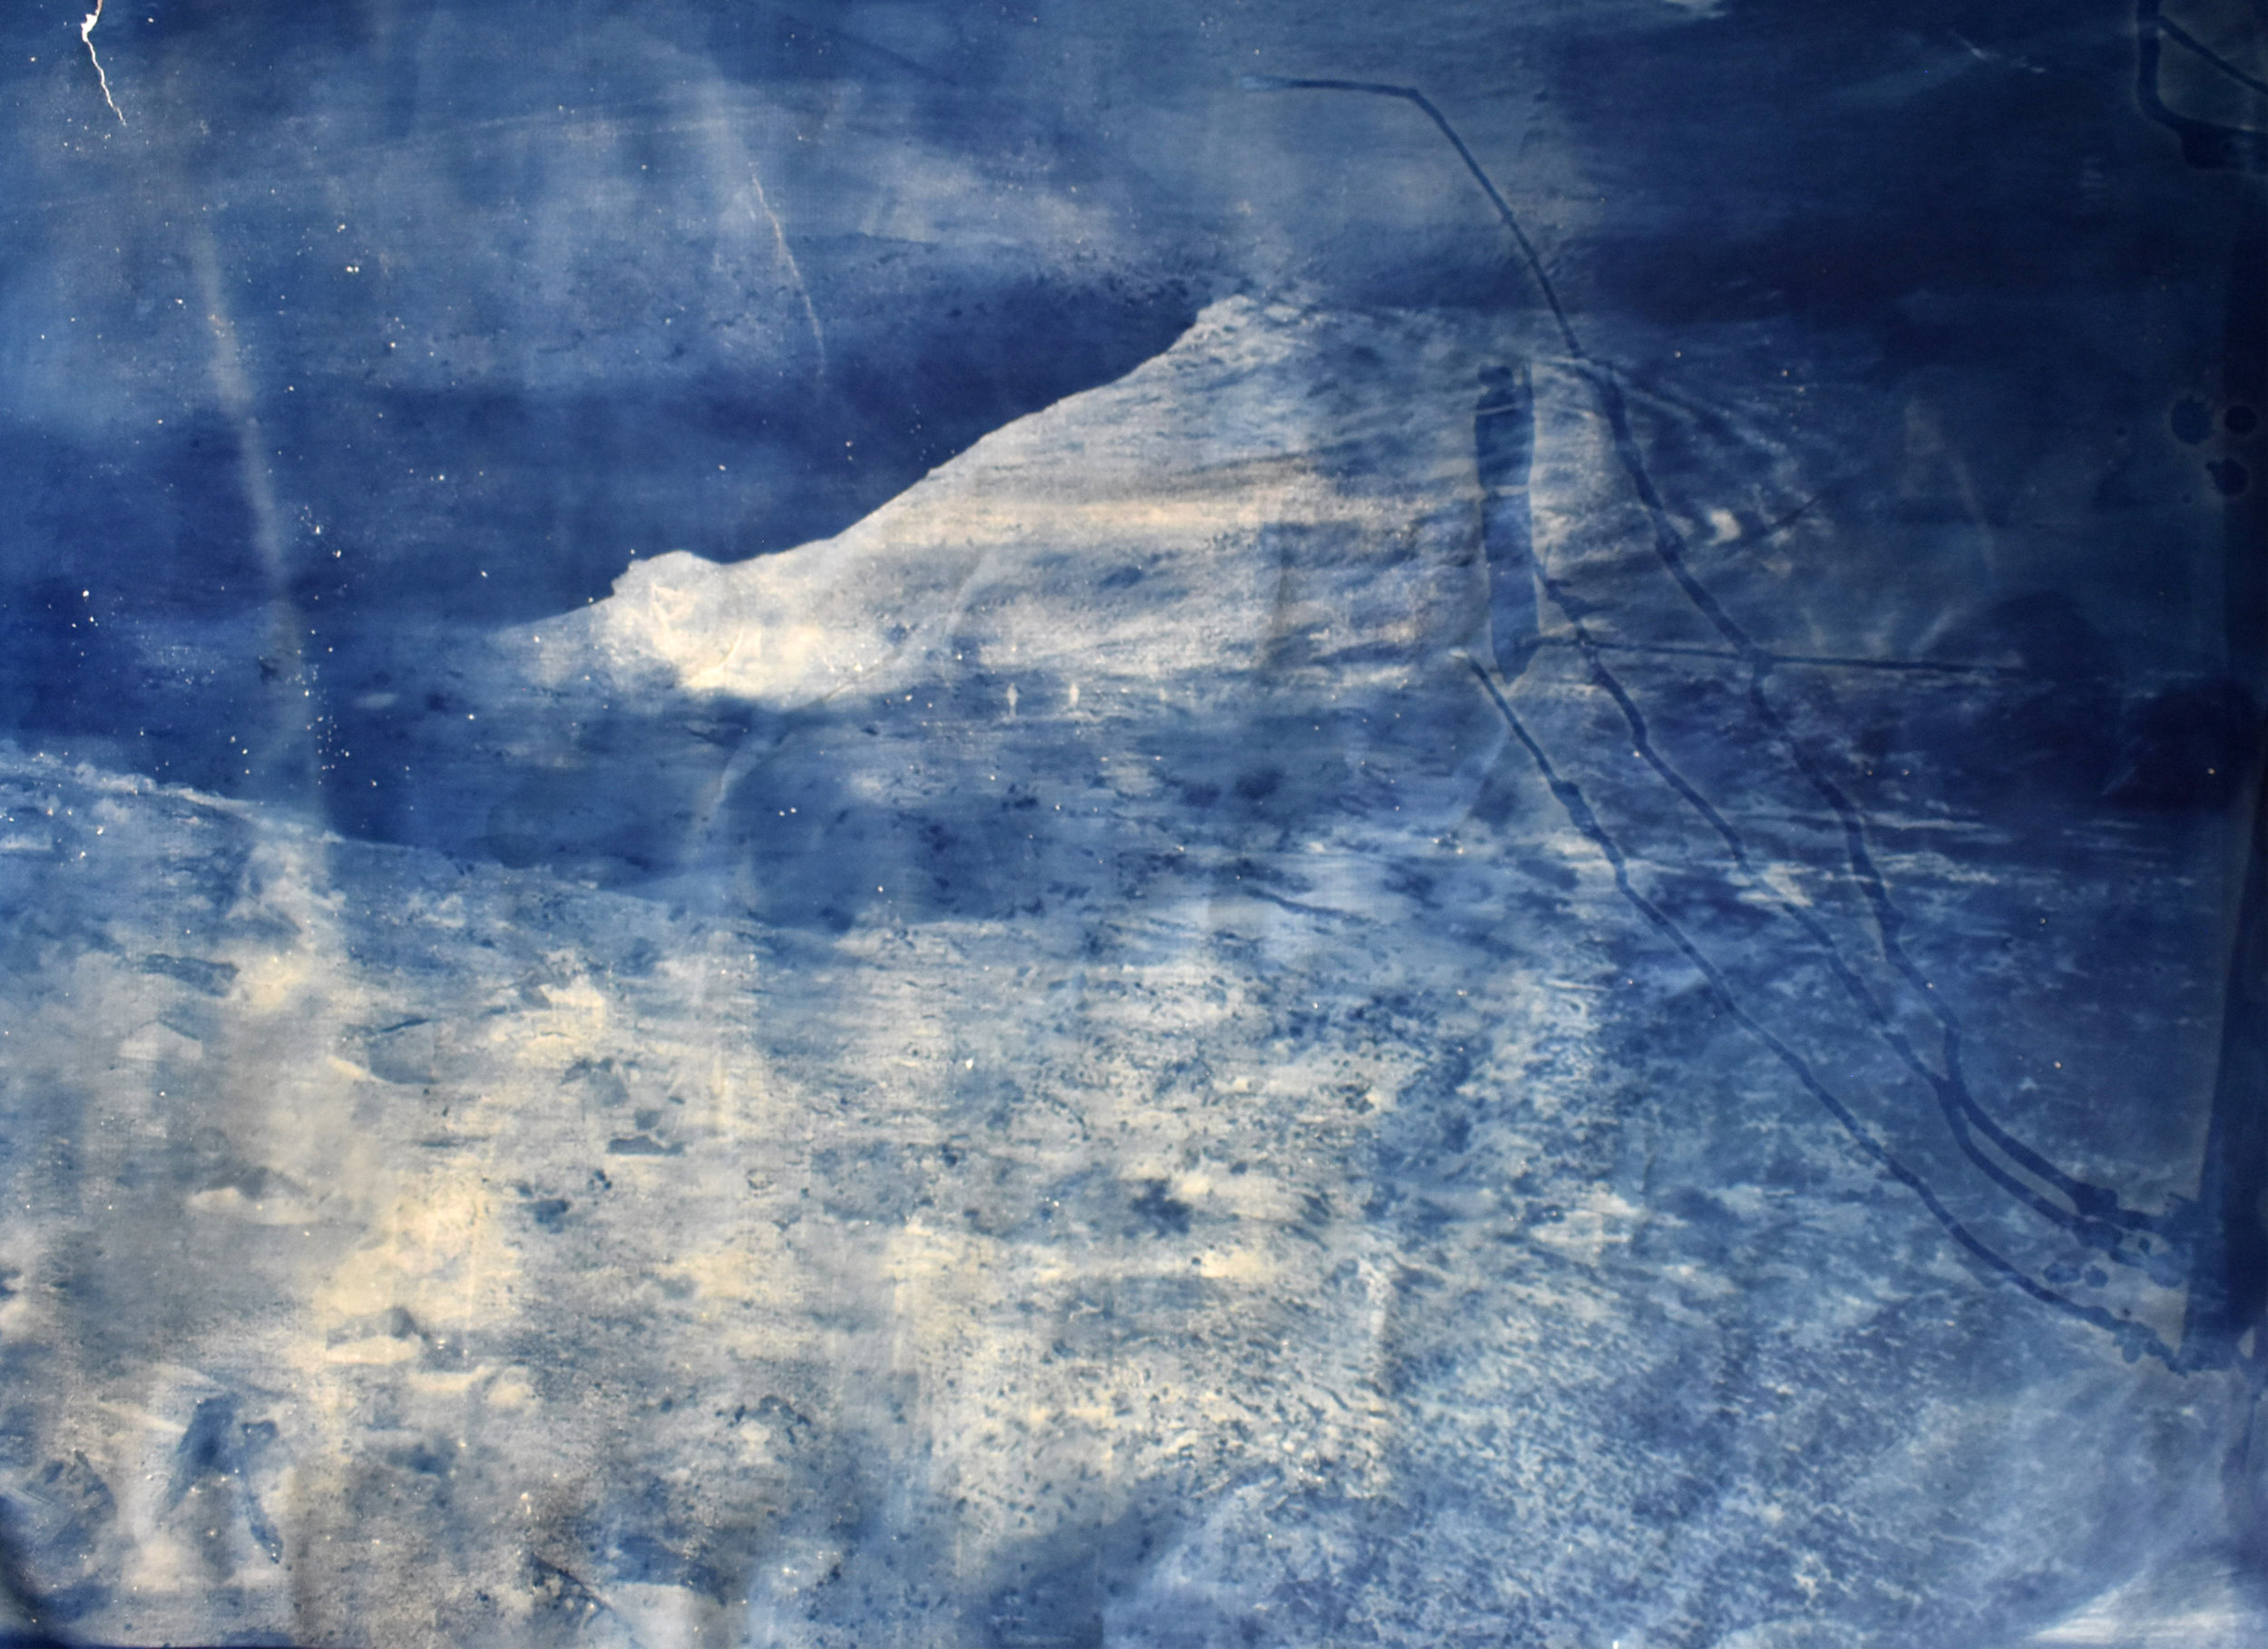 Over and Under (Whirlpool).  Cyanotype, 137cm x 109cm. Superposition of 2 photographs taken by the artist: fumerole pits in Námafjall, Iceland and a whirlpool off the Cap Fréhel, France.